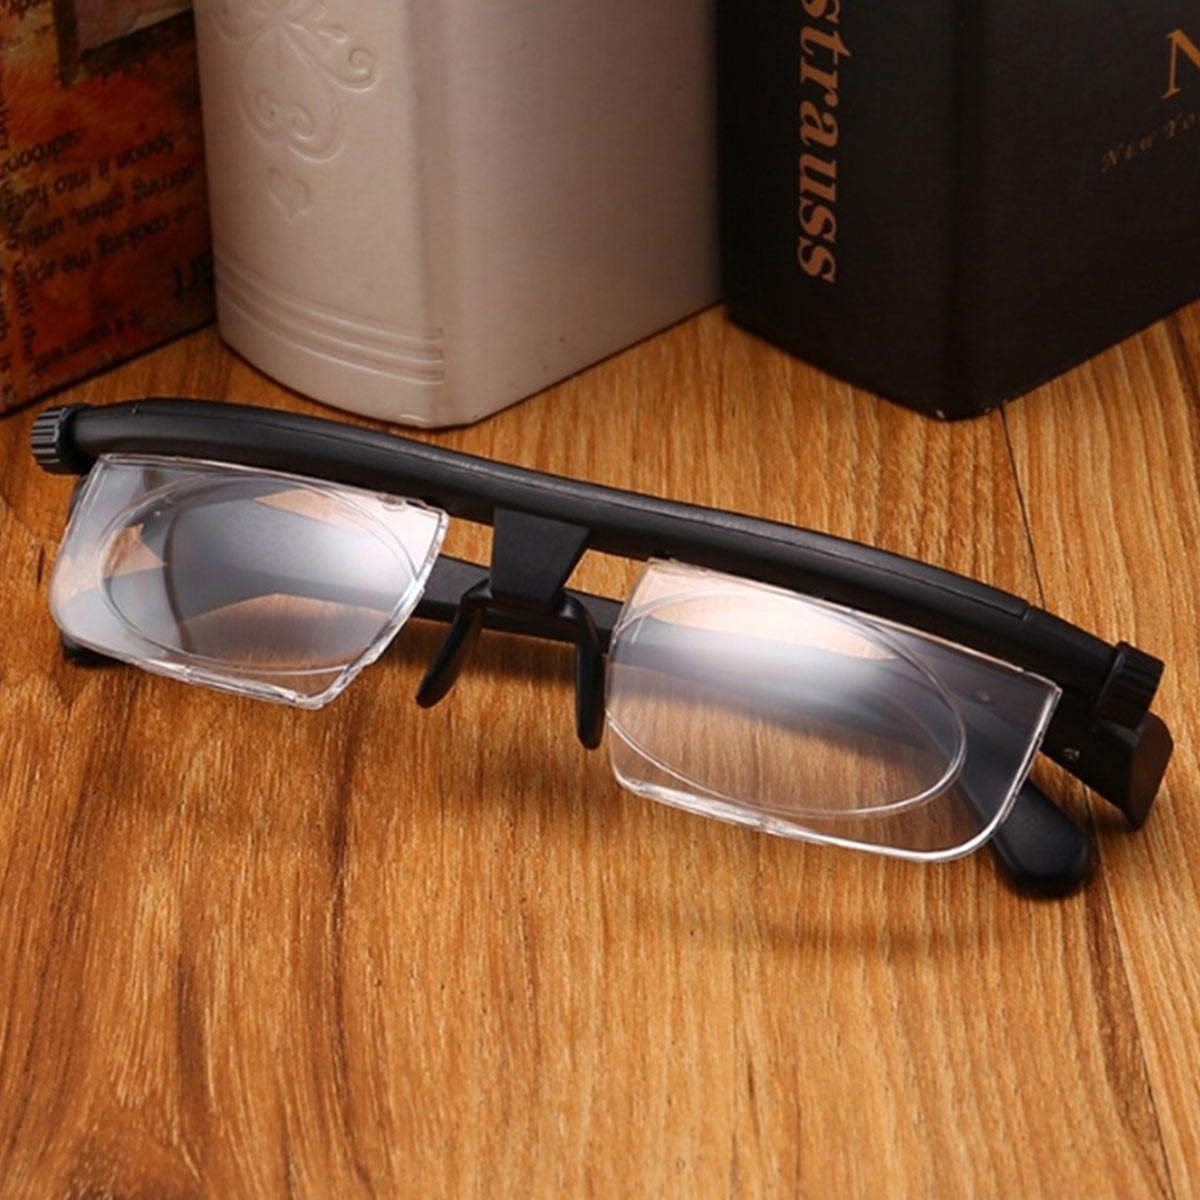 New Focus Adjustable Lens  Men Women Reading Myopia Glasses Variable Vision Strength Glasses Correction Binocular Drop Shipping